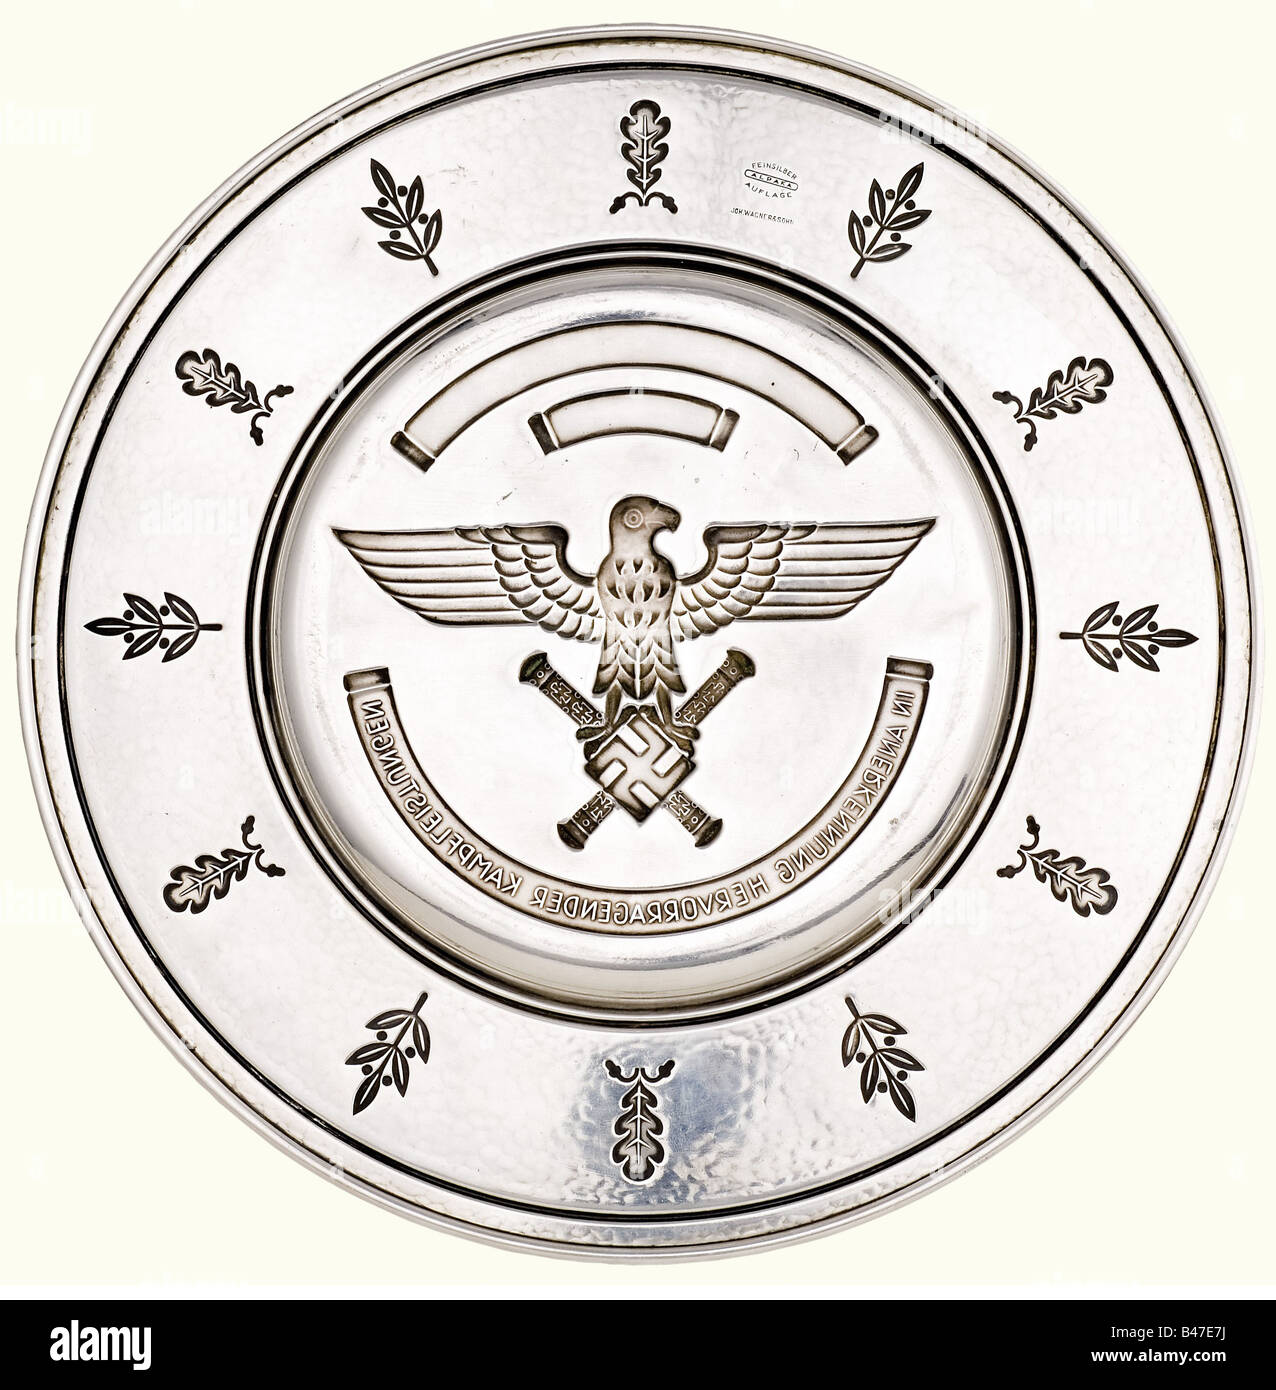 A Luftwaffe honour salver, for outstanding conduct in combat. Recess-stamped, silver-plated alpaca alloy salver - Stock Image